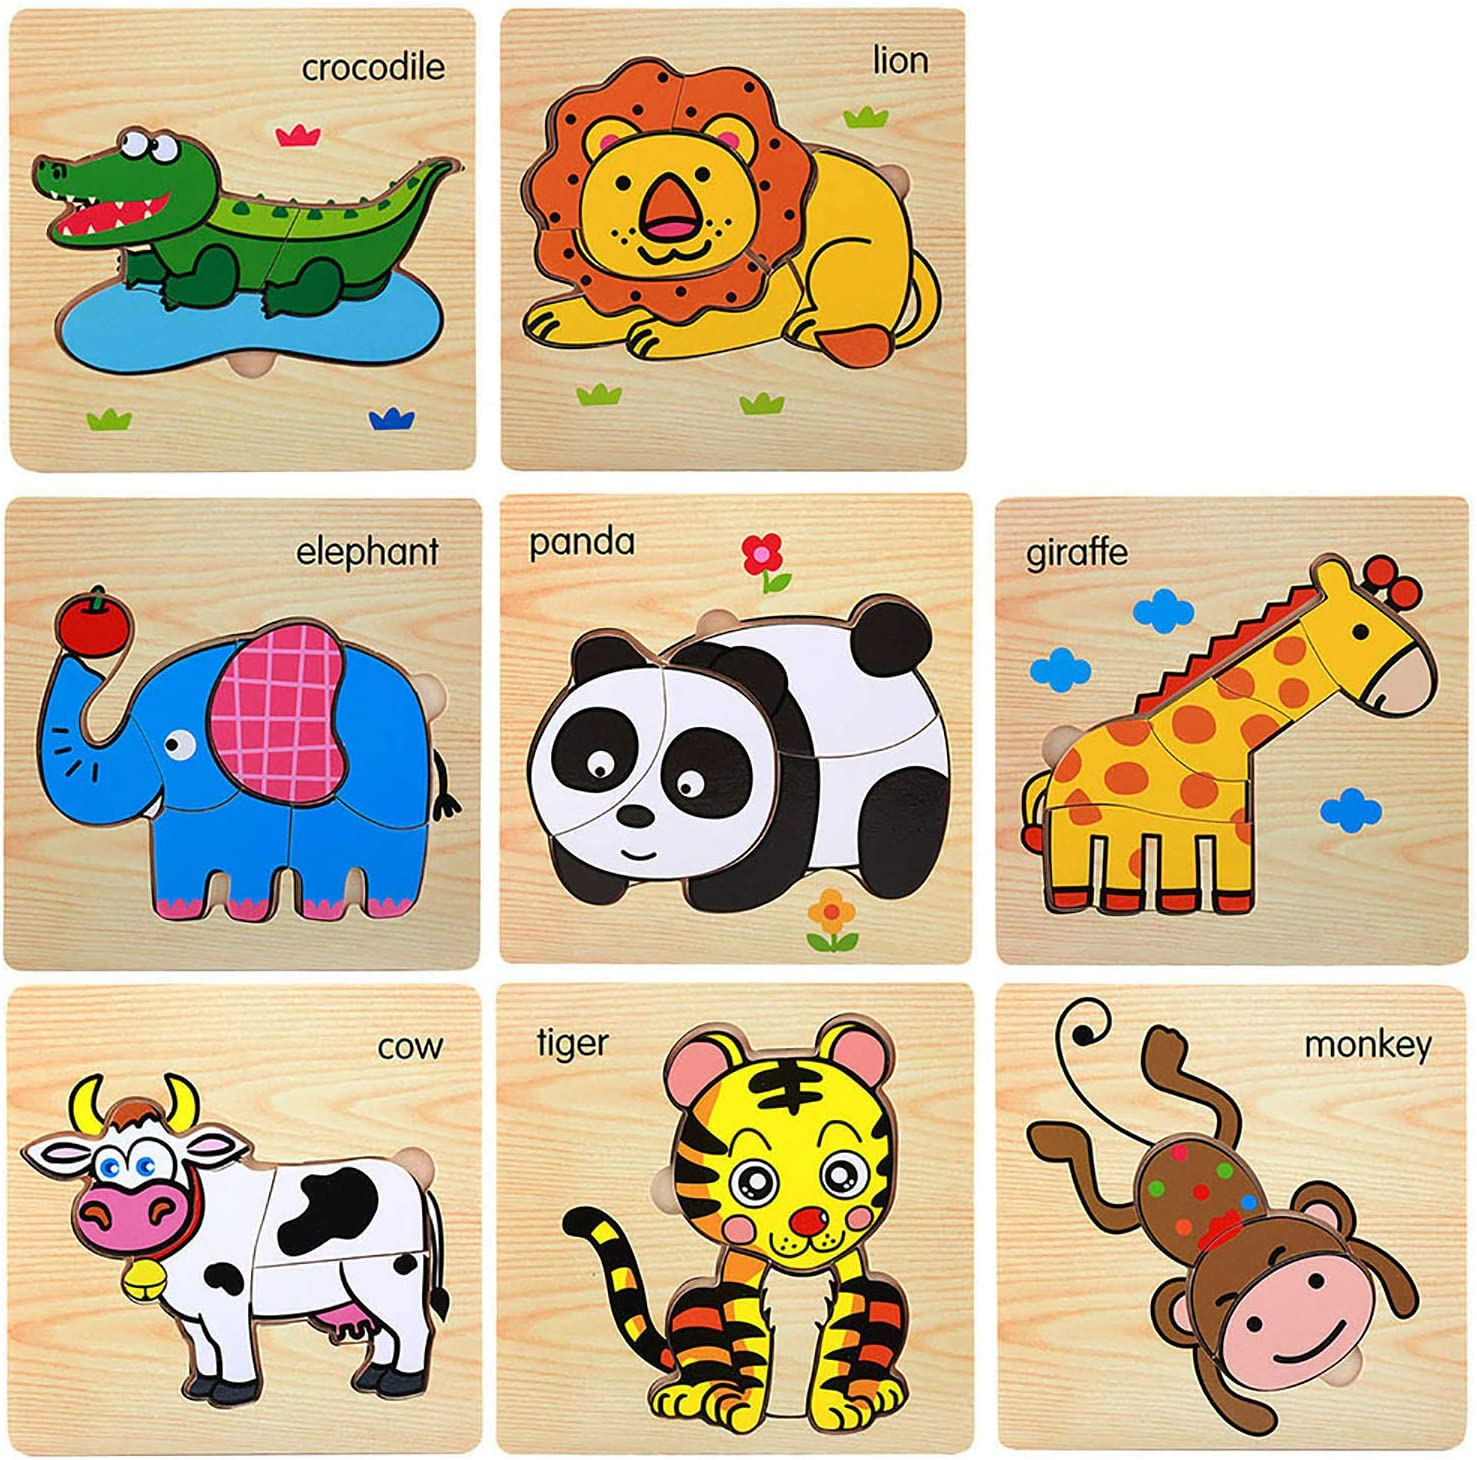 Eliiti Wooden Farm Animals Jigsaw Puzzle for Kids 3 to 5 Years Old Boys Girls